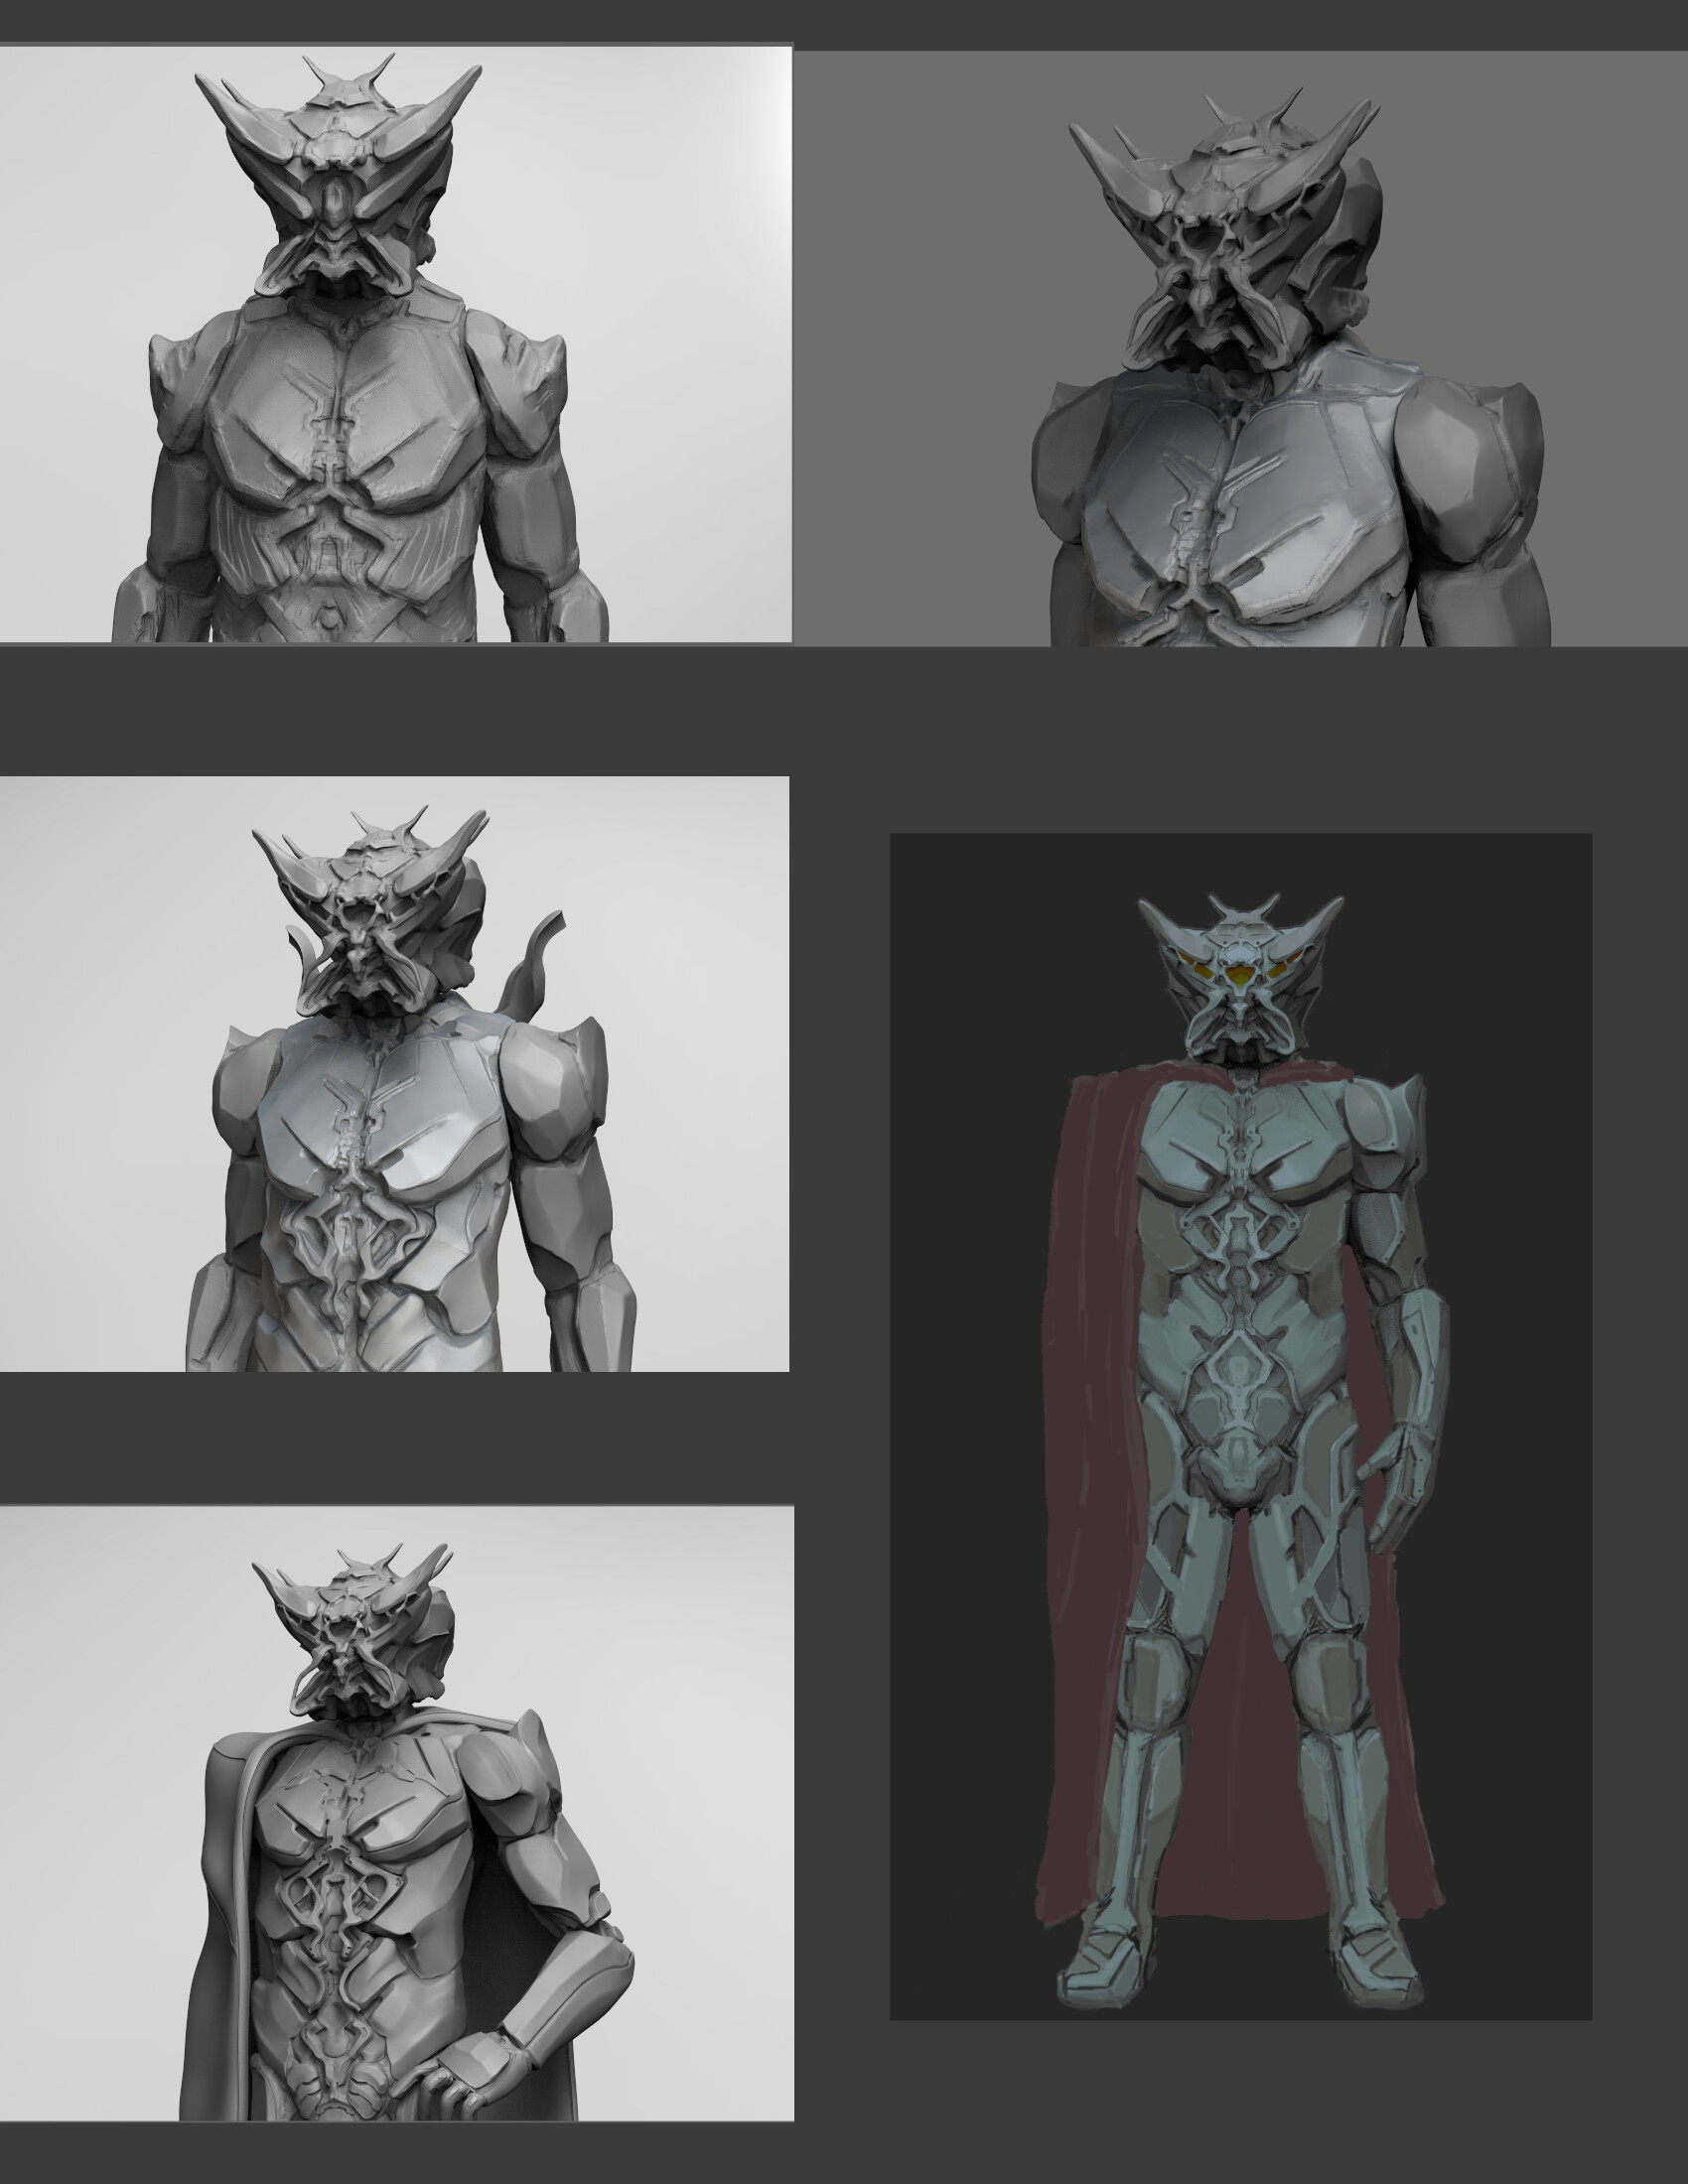 ZBrush and Paintover WIPs